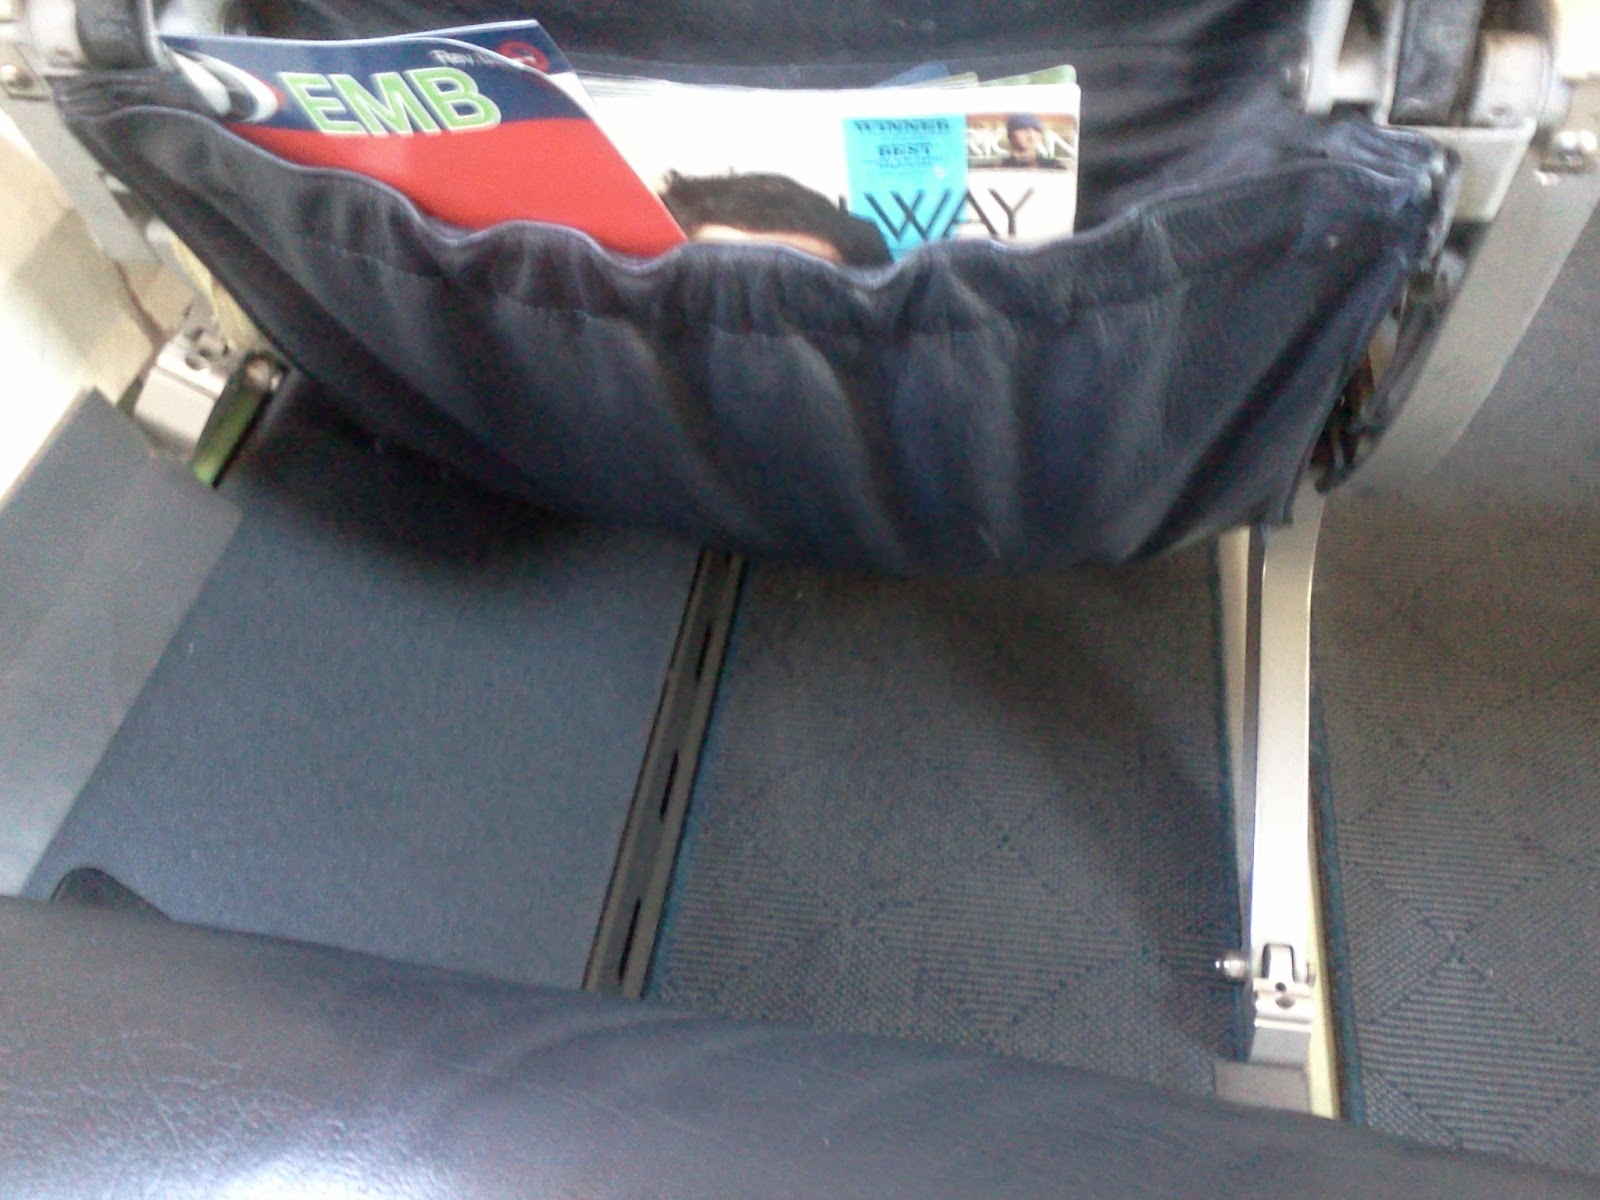 Carry On Items Such As BookBags, Purses, Computer Bags Must Be Able to Fit Underneath The Seat In Front of You